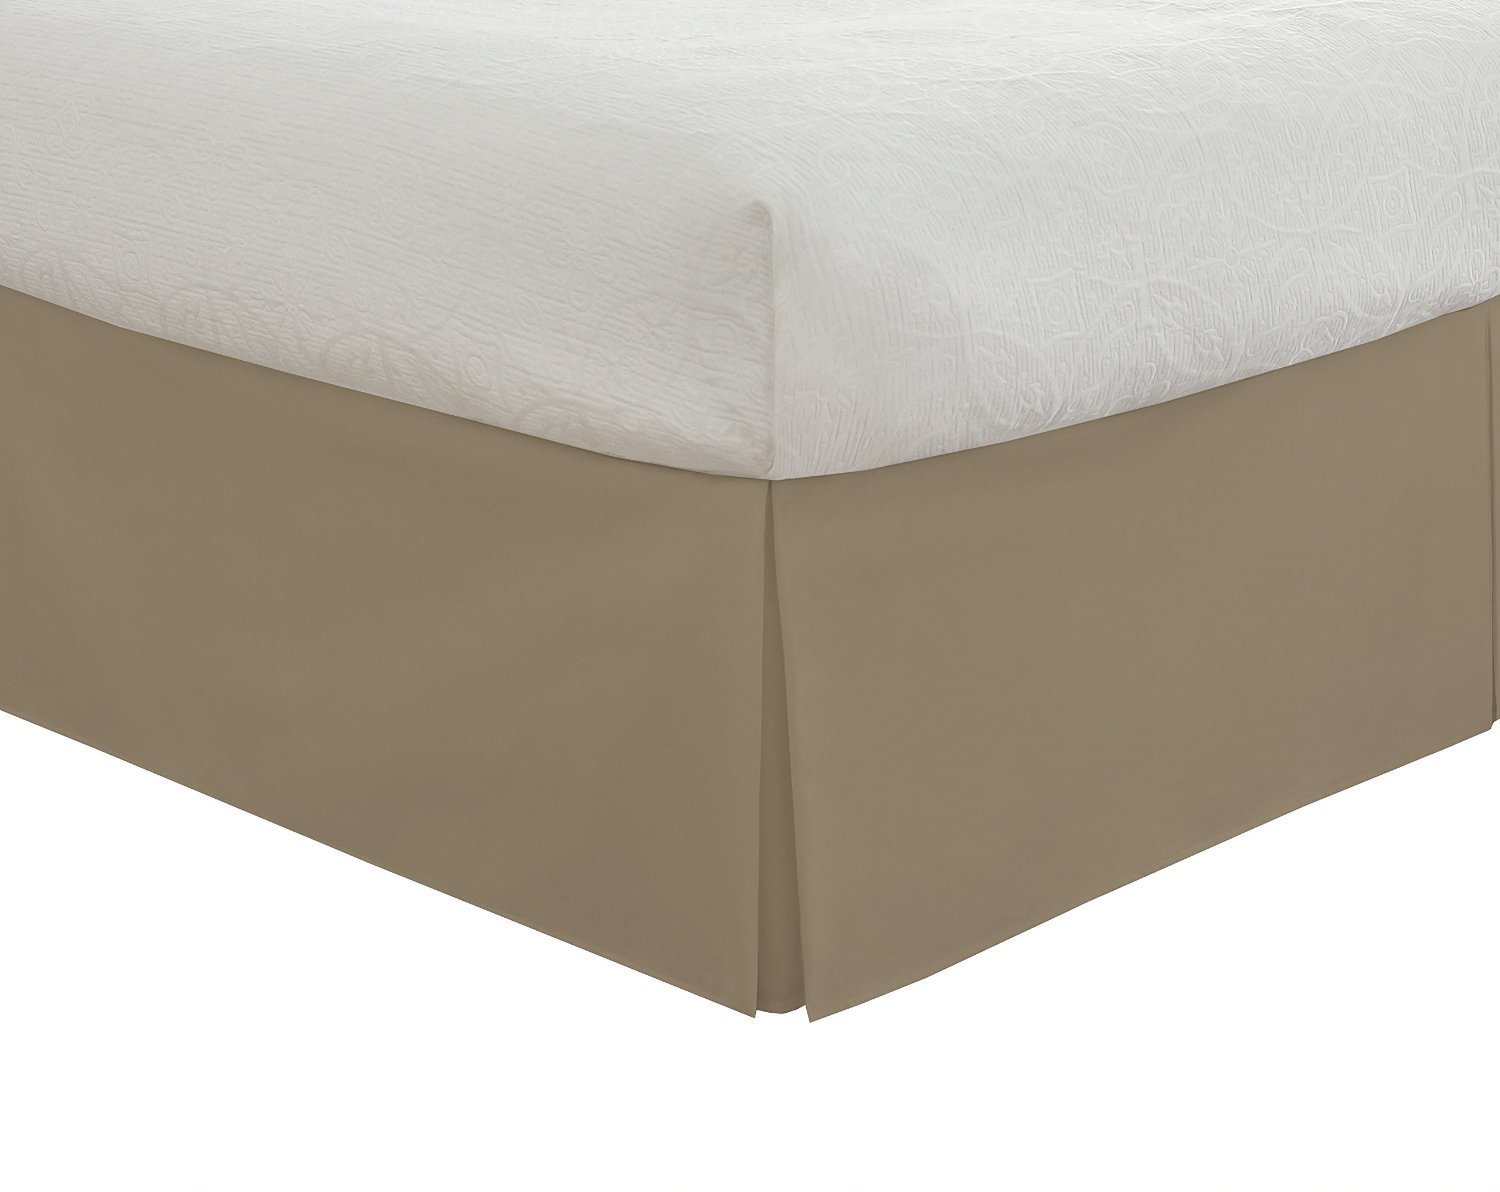 SRP Bedding Real 210 Thread Count Split Corner Bed Skirt / Dust Ruffle Queen Size Solid Taupe 16'' inches Drop Egyptian Cotton Quality Wrinkle & Fade Resistant